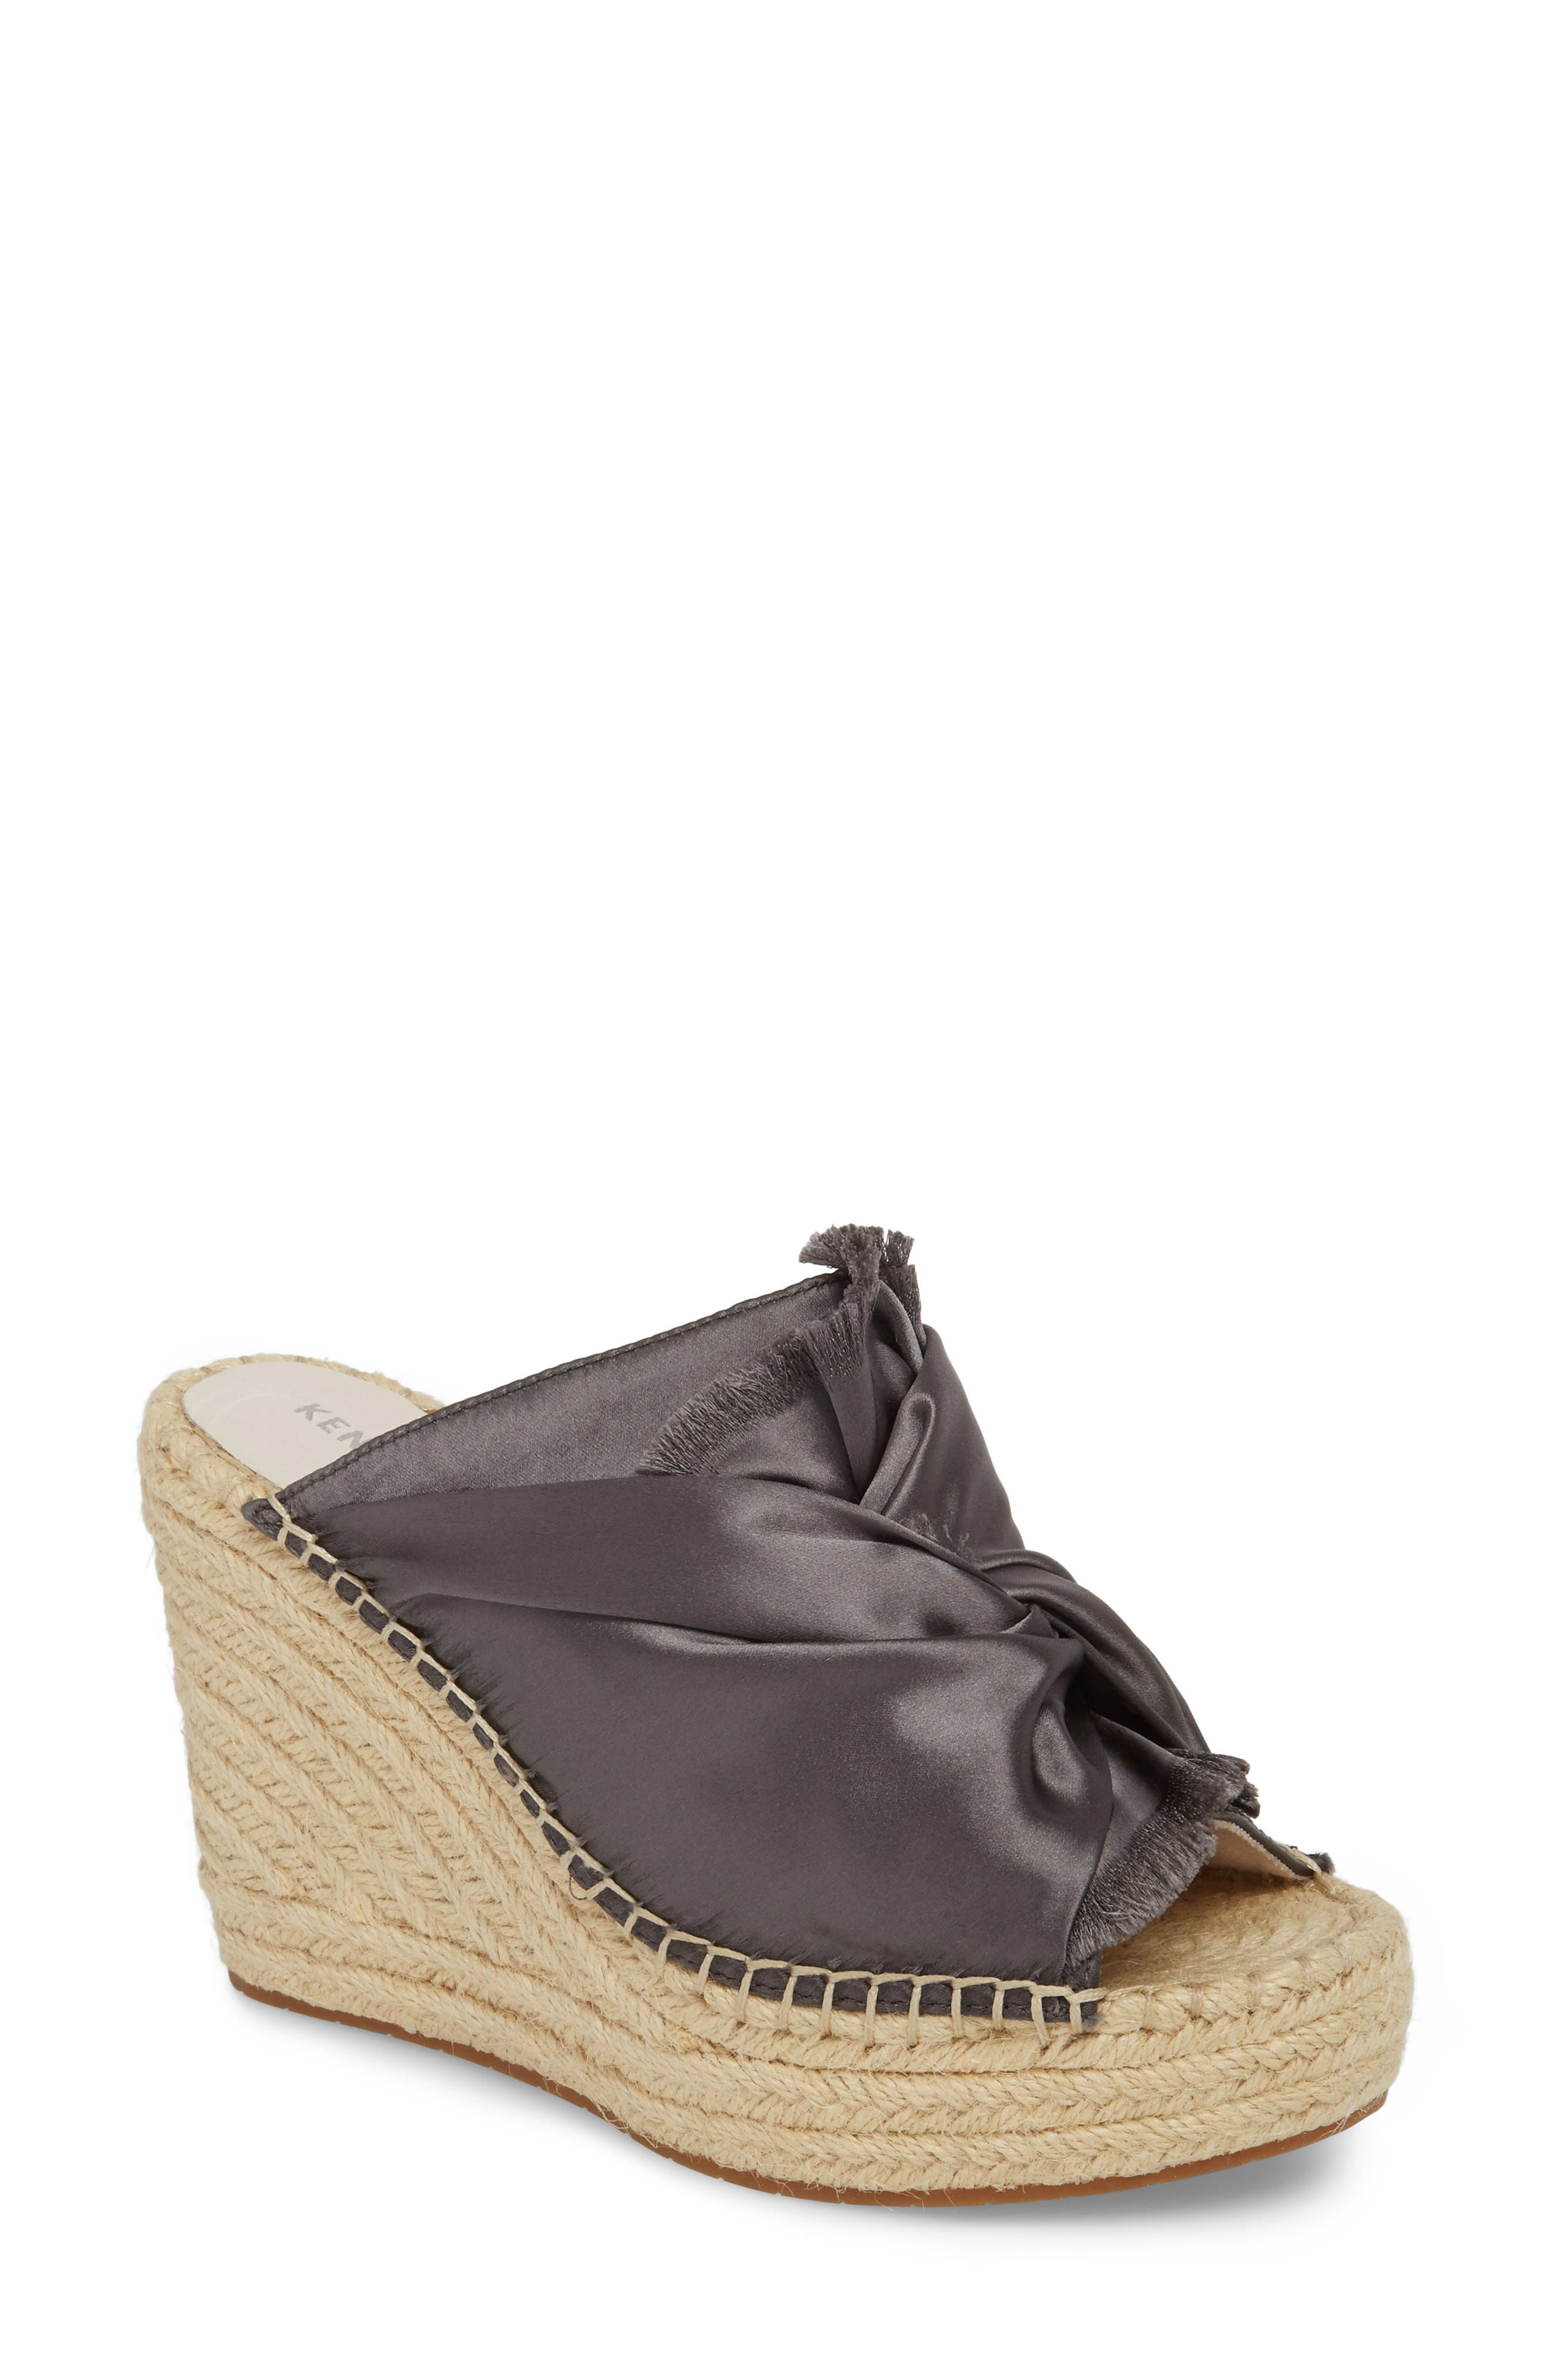 Odele Espadrille Wedge,                             Main thumbnail 1, color,                             020